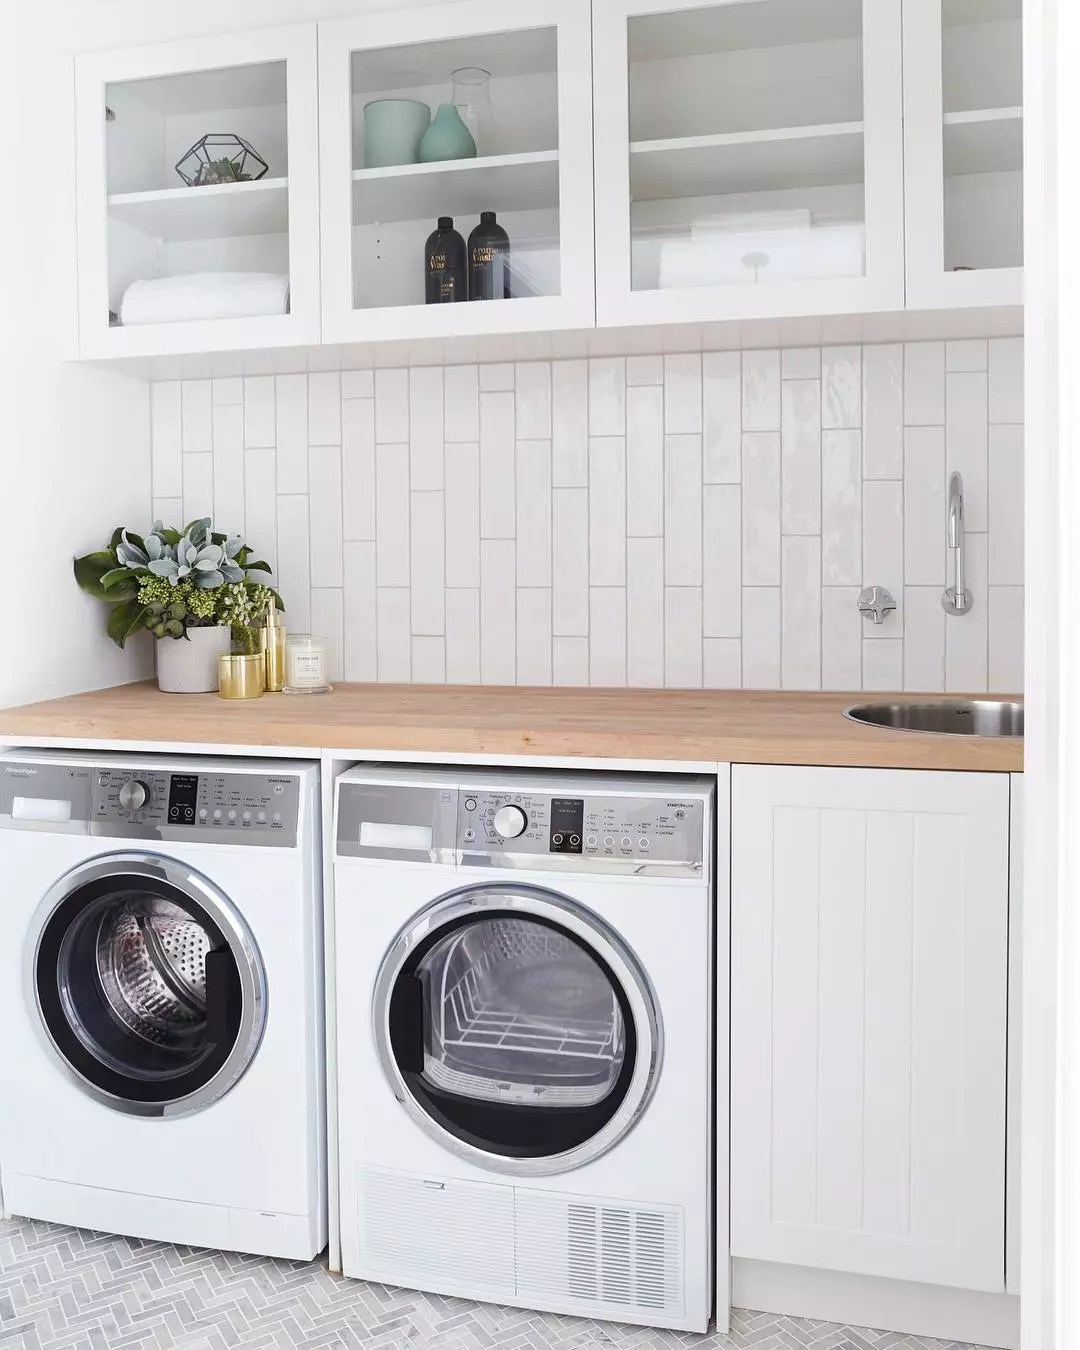 Washer-dryer combo in laundry room. Photo by Instagram user @threebirdsrenovations